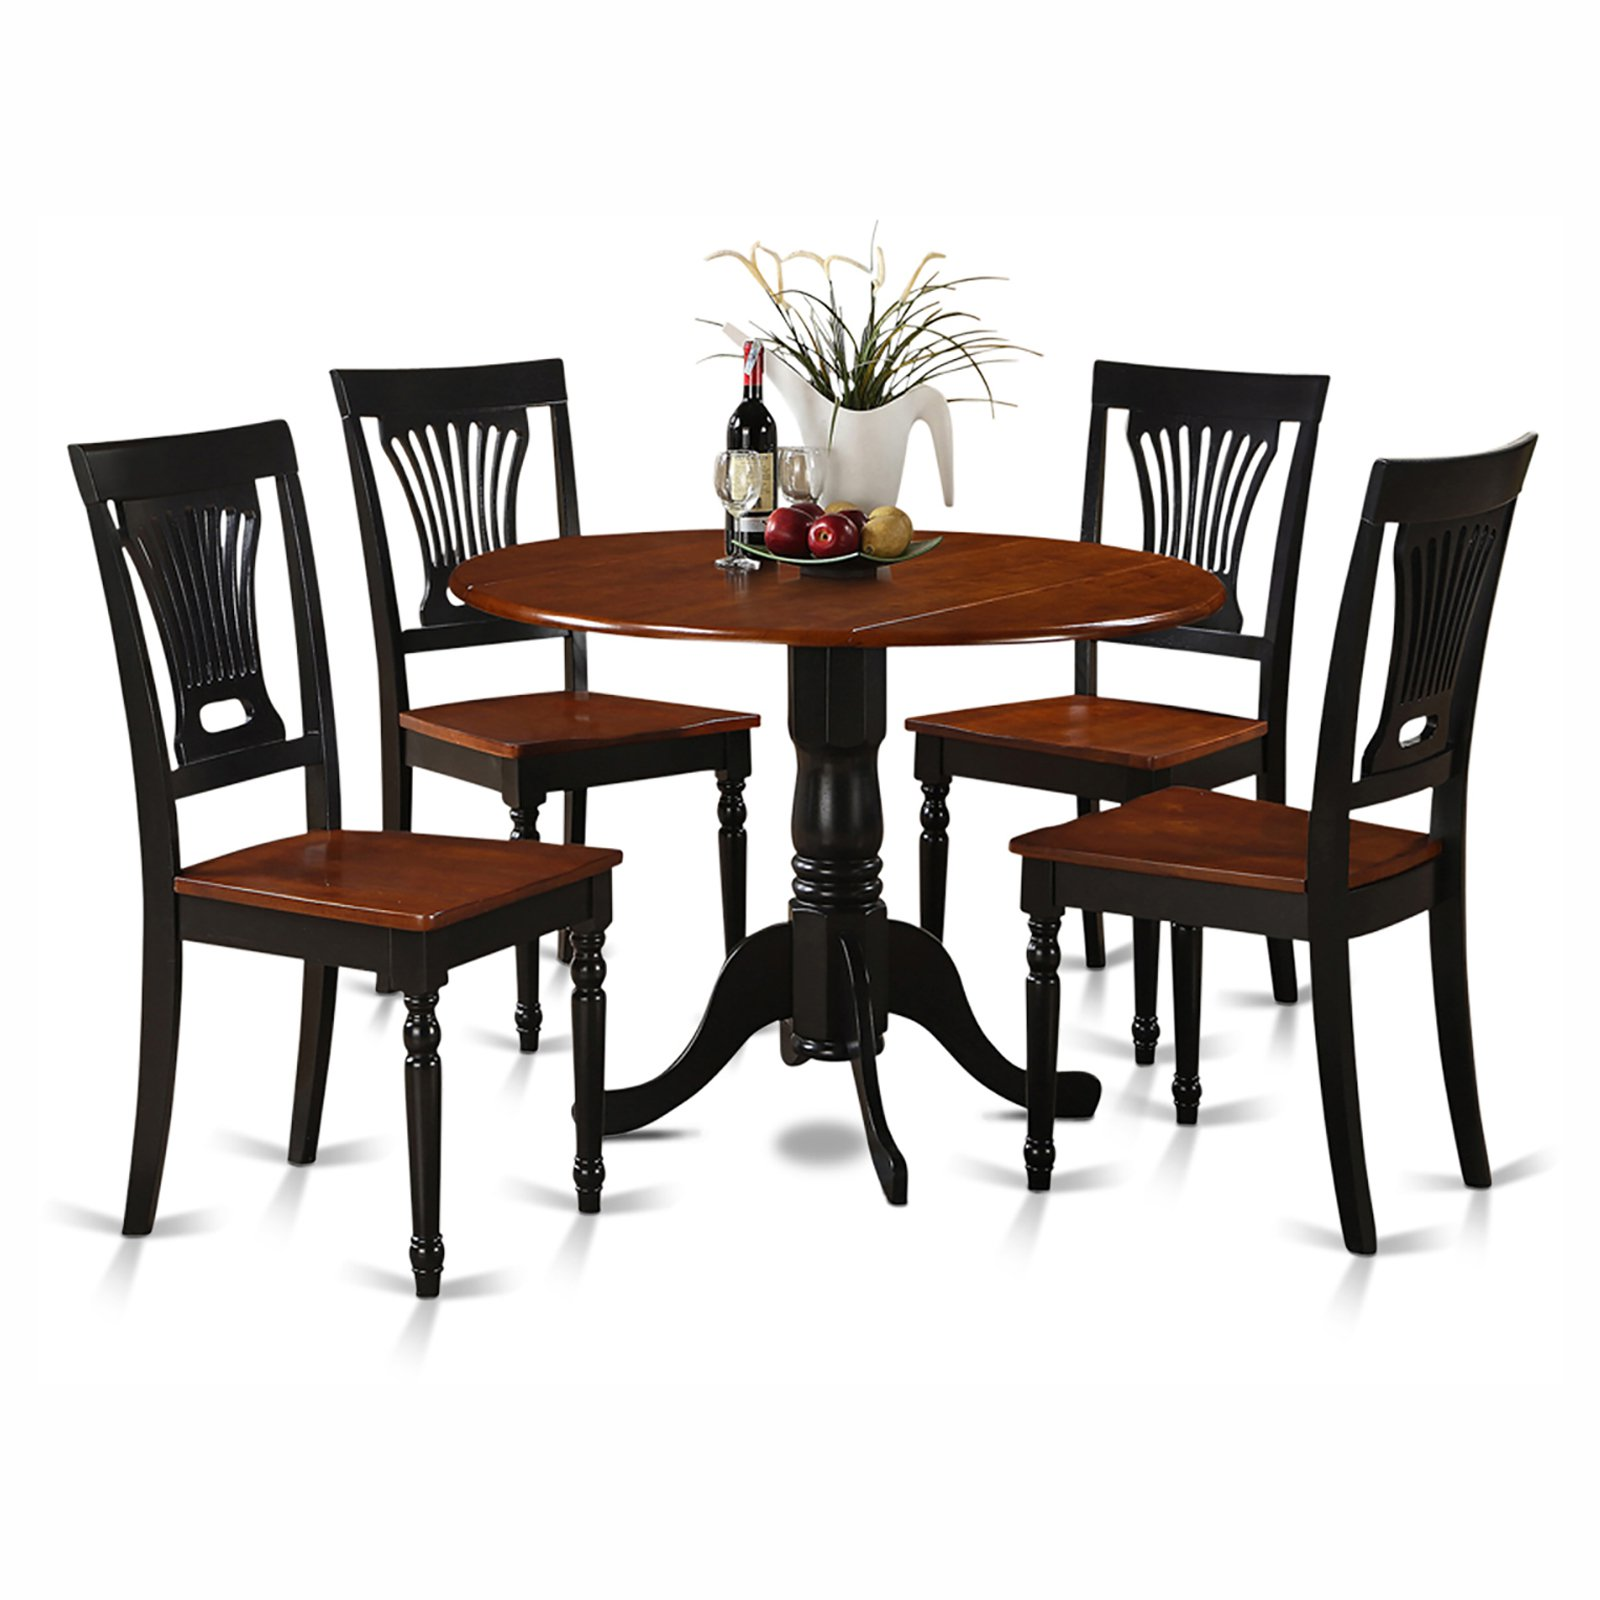 East West Furniture Dublin 5 Piece Drop Leaf Dining Table Set with Plainview Wooden Seat Chairs